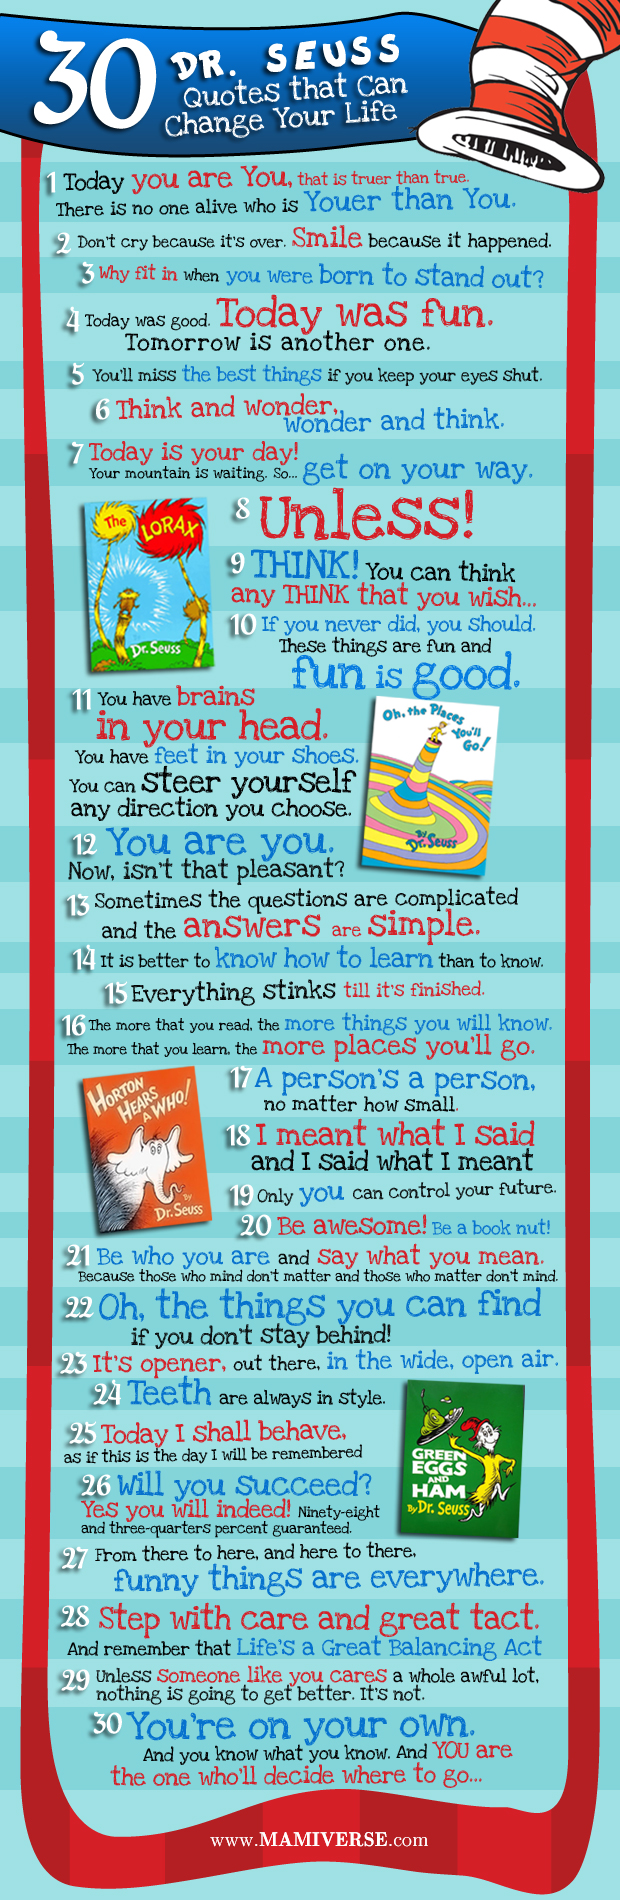 30 Quotes by Dr Seuss That Can Change Your Life